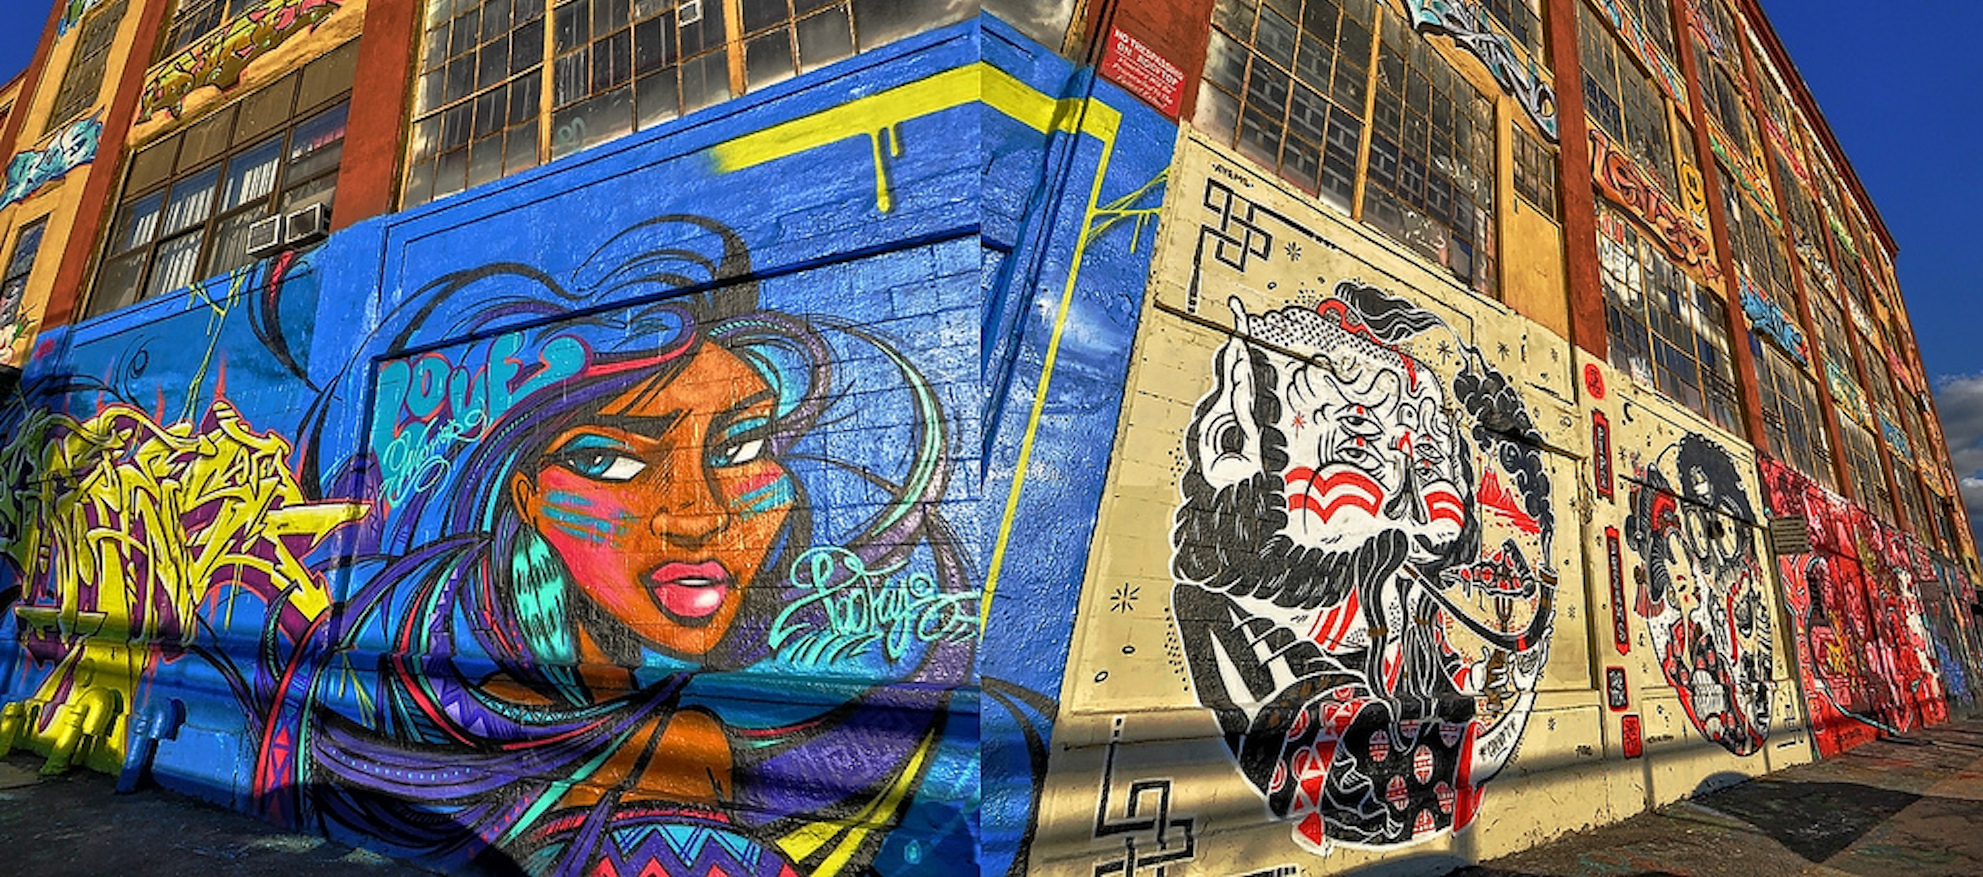 NYC graffiti artists win record $6.7M after developer destroyed their work